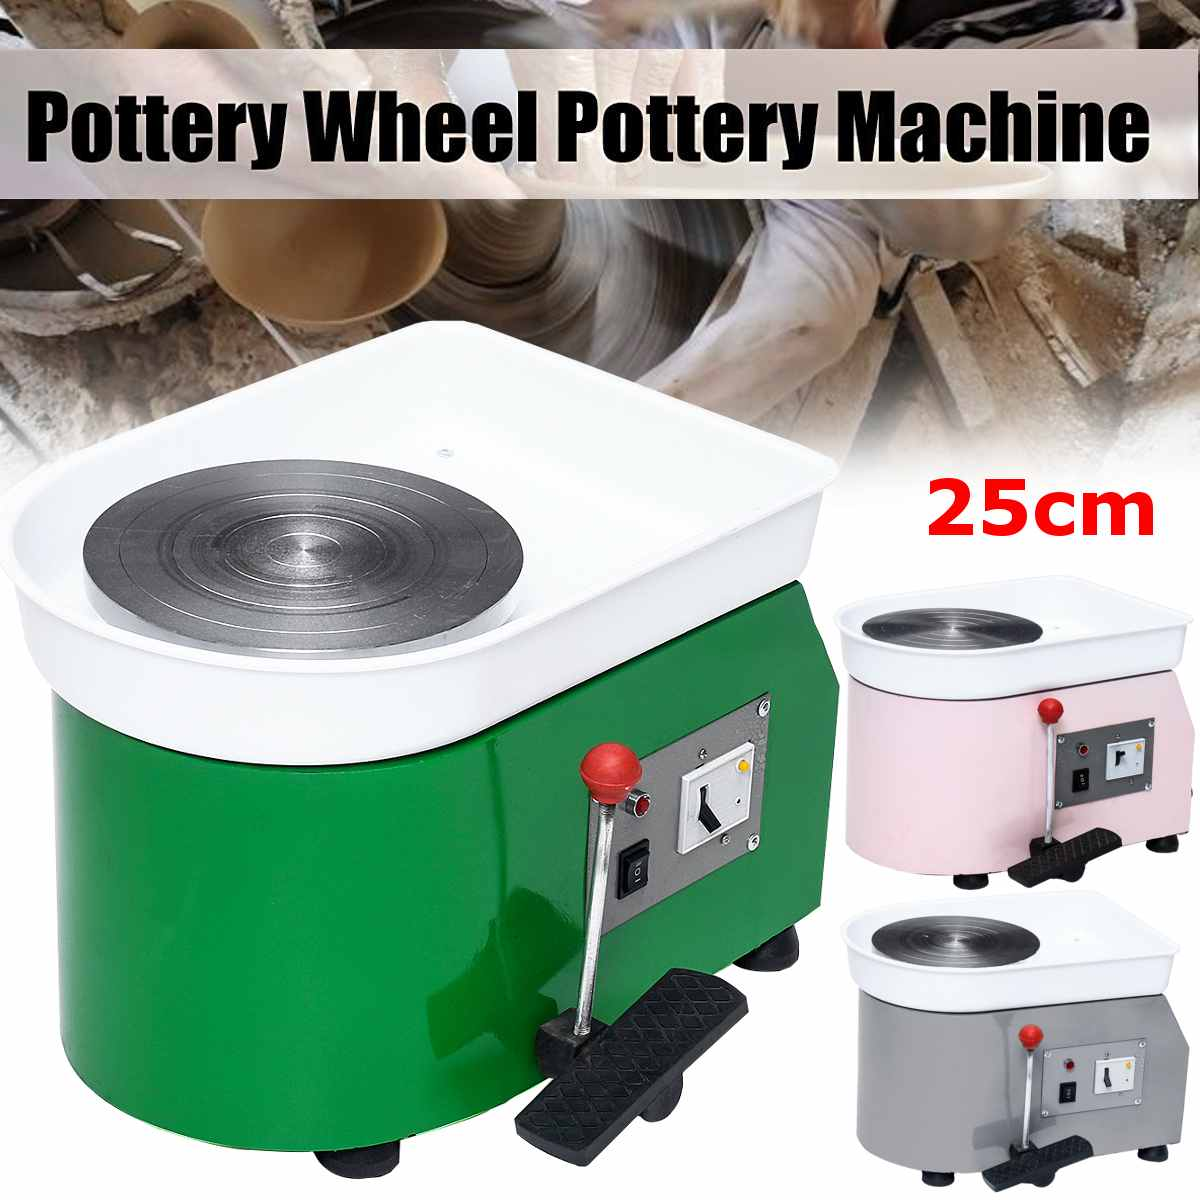 220V 250W 250mm Turning Electric Pottery Wheel Ceramic Machine Ceramic Clay Potter Kit For Ceramic Work Ceramics